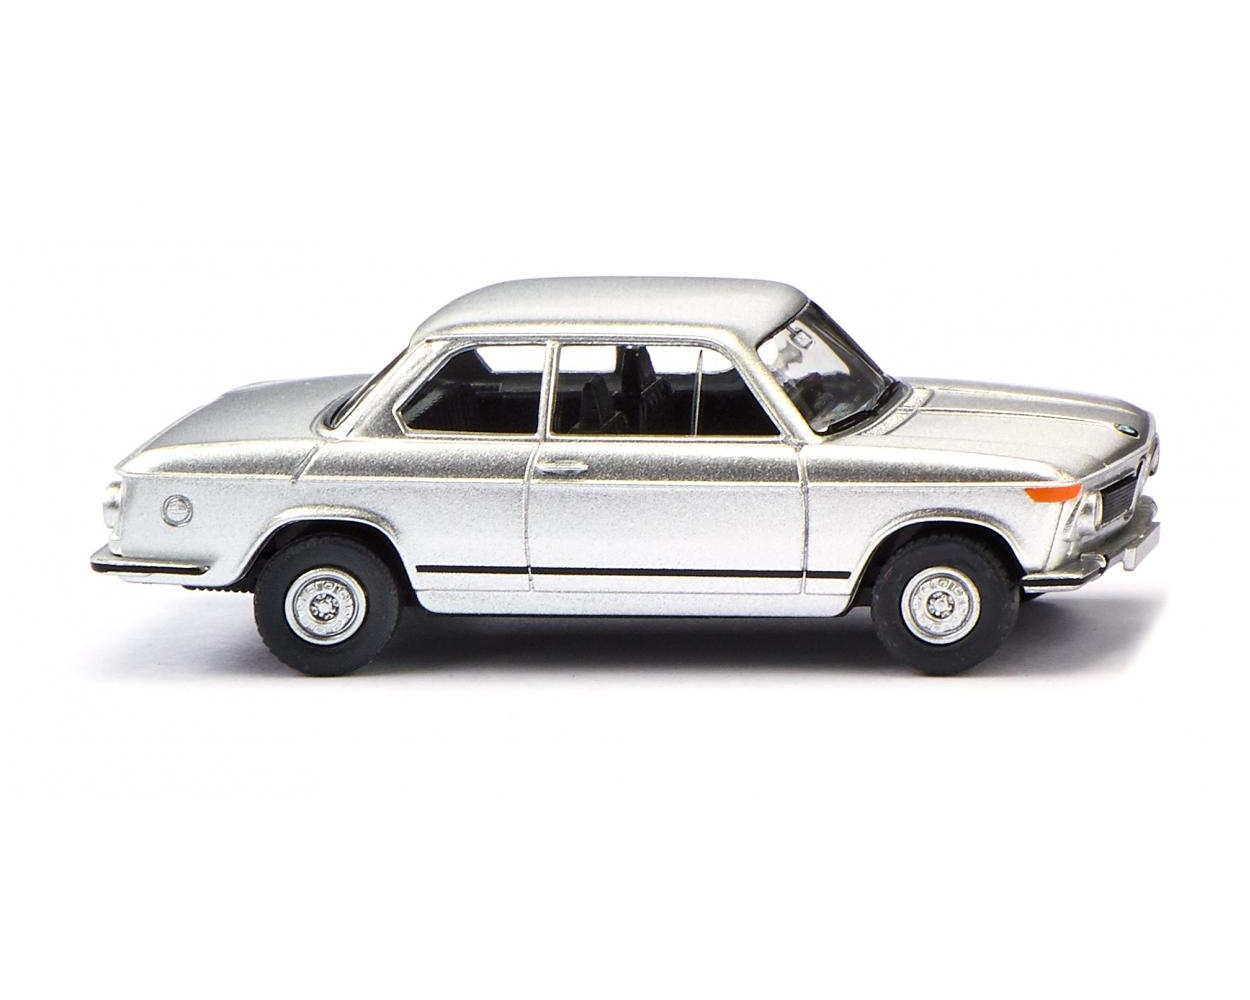 Wiking 018306 - BMW 2002 - SILBER METALLIC